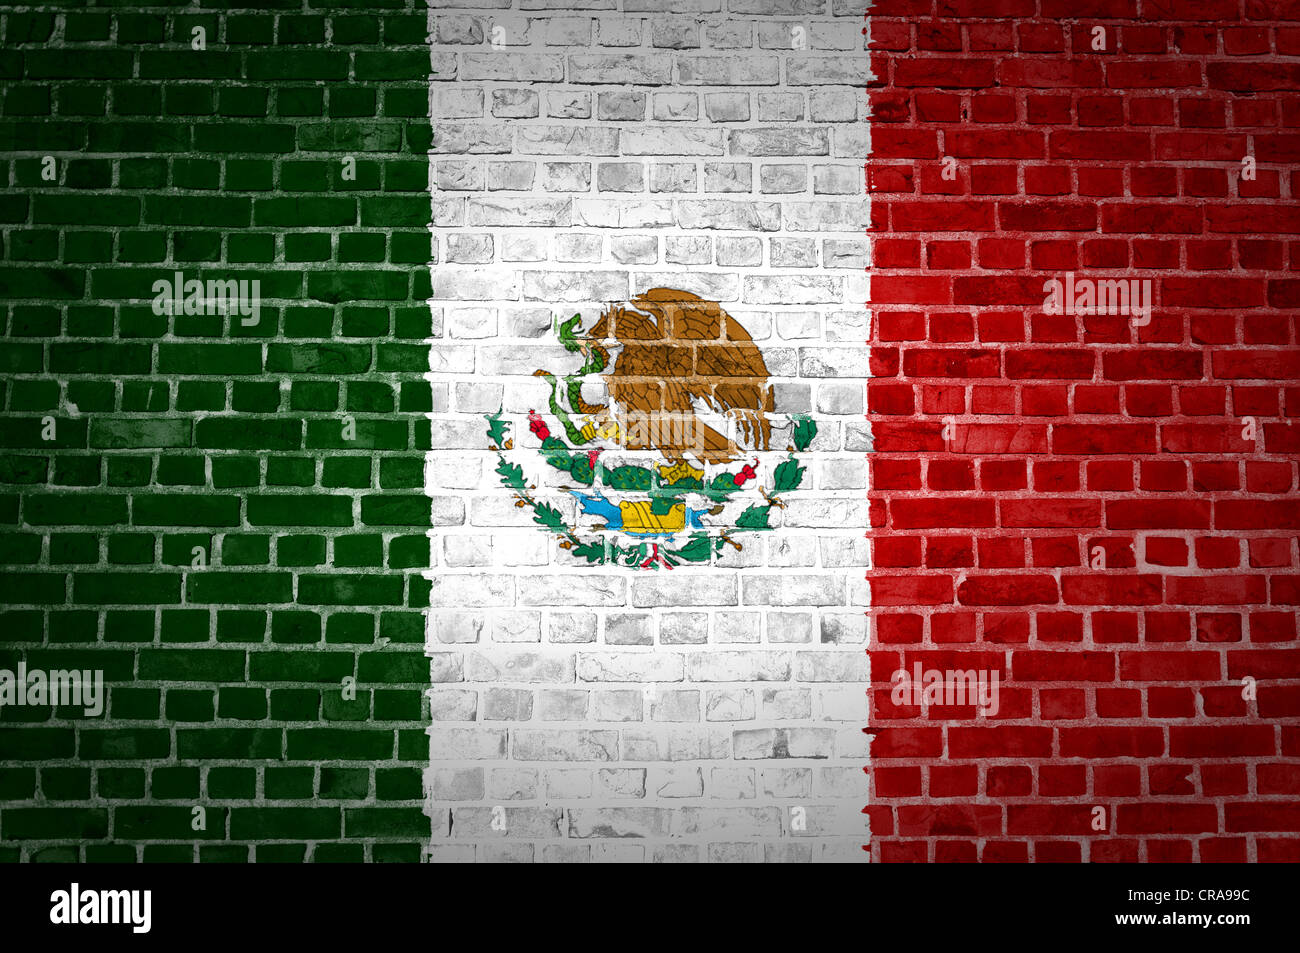 An image of the Mexico flag painted on a brick wall in an urban location - Stock Image